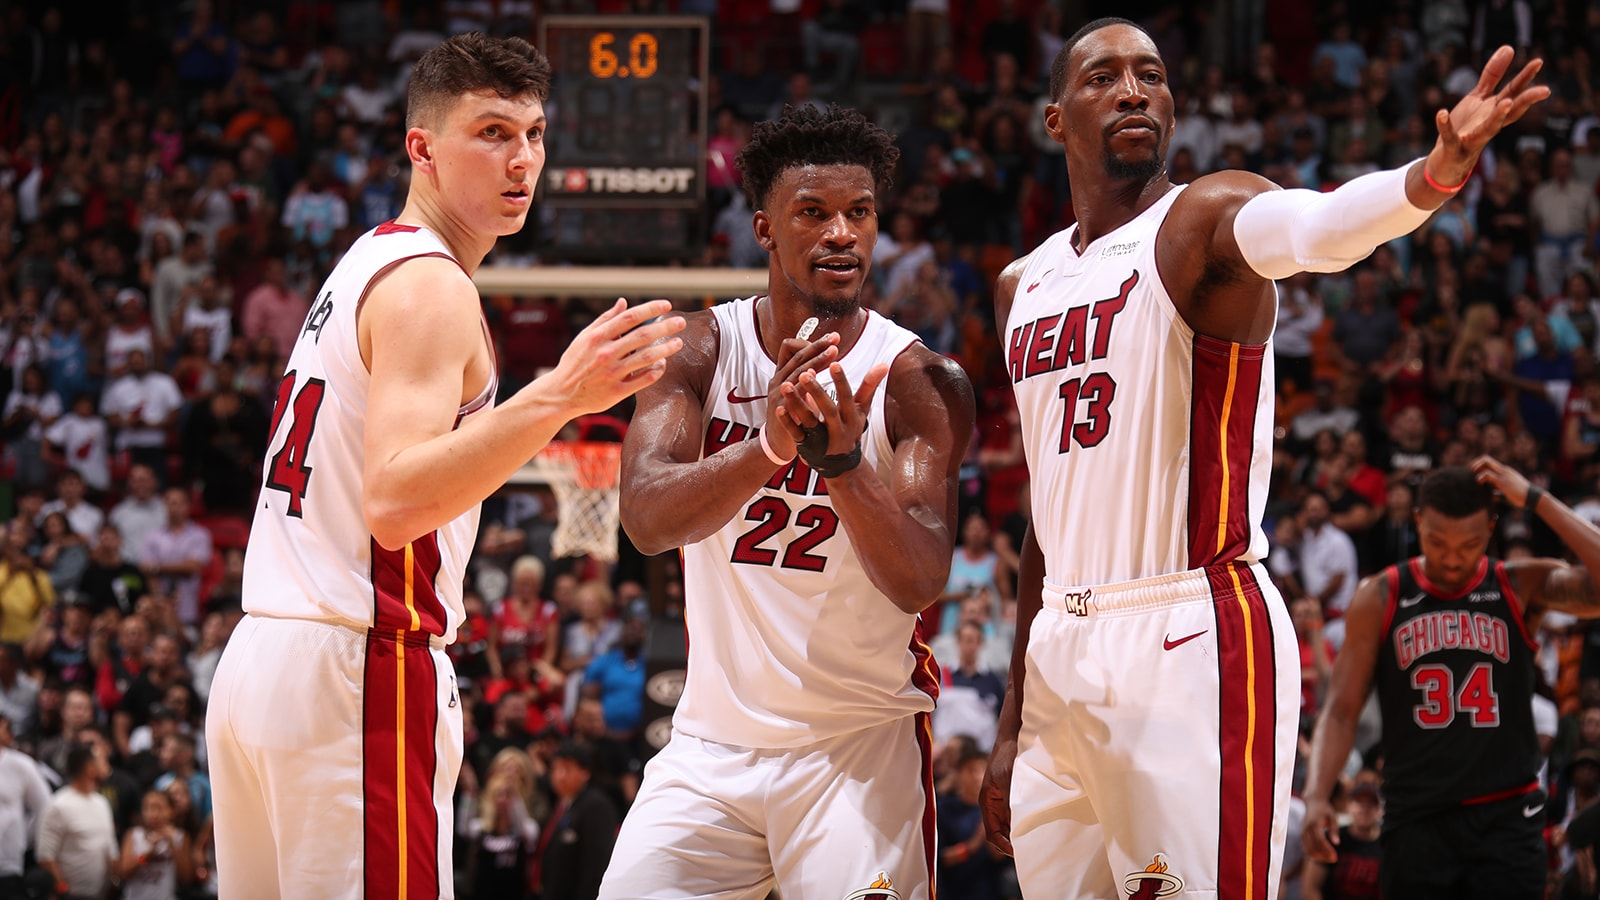 The Miami Heat team